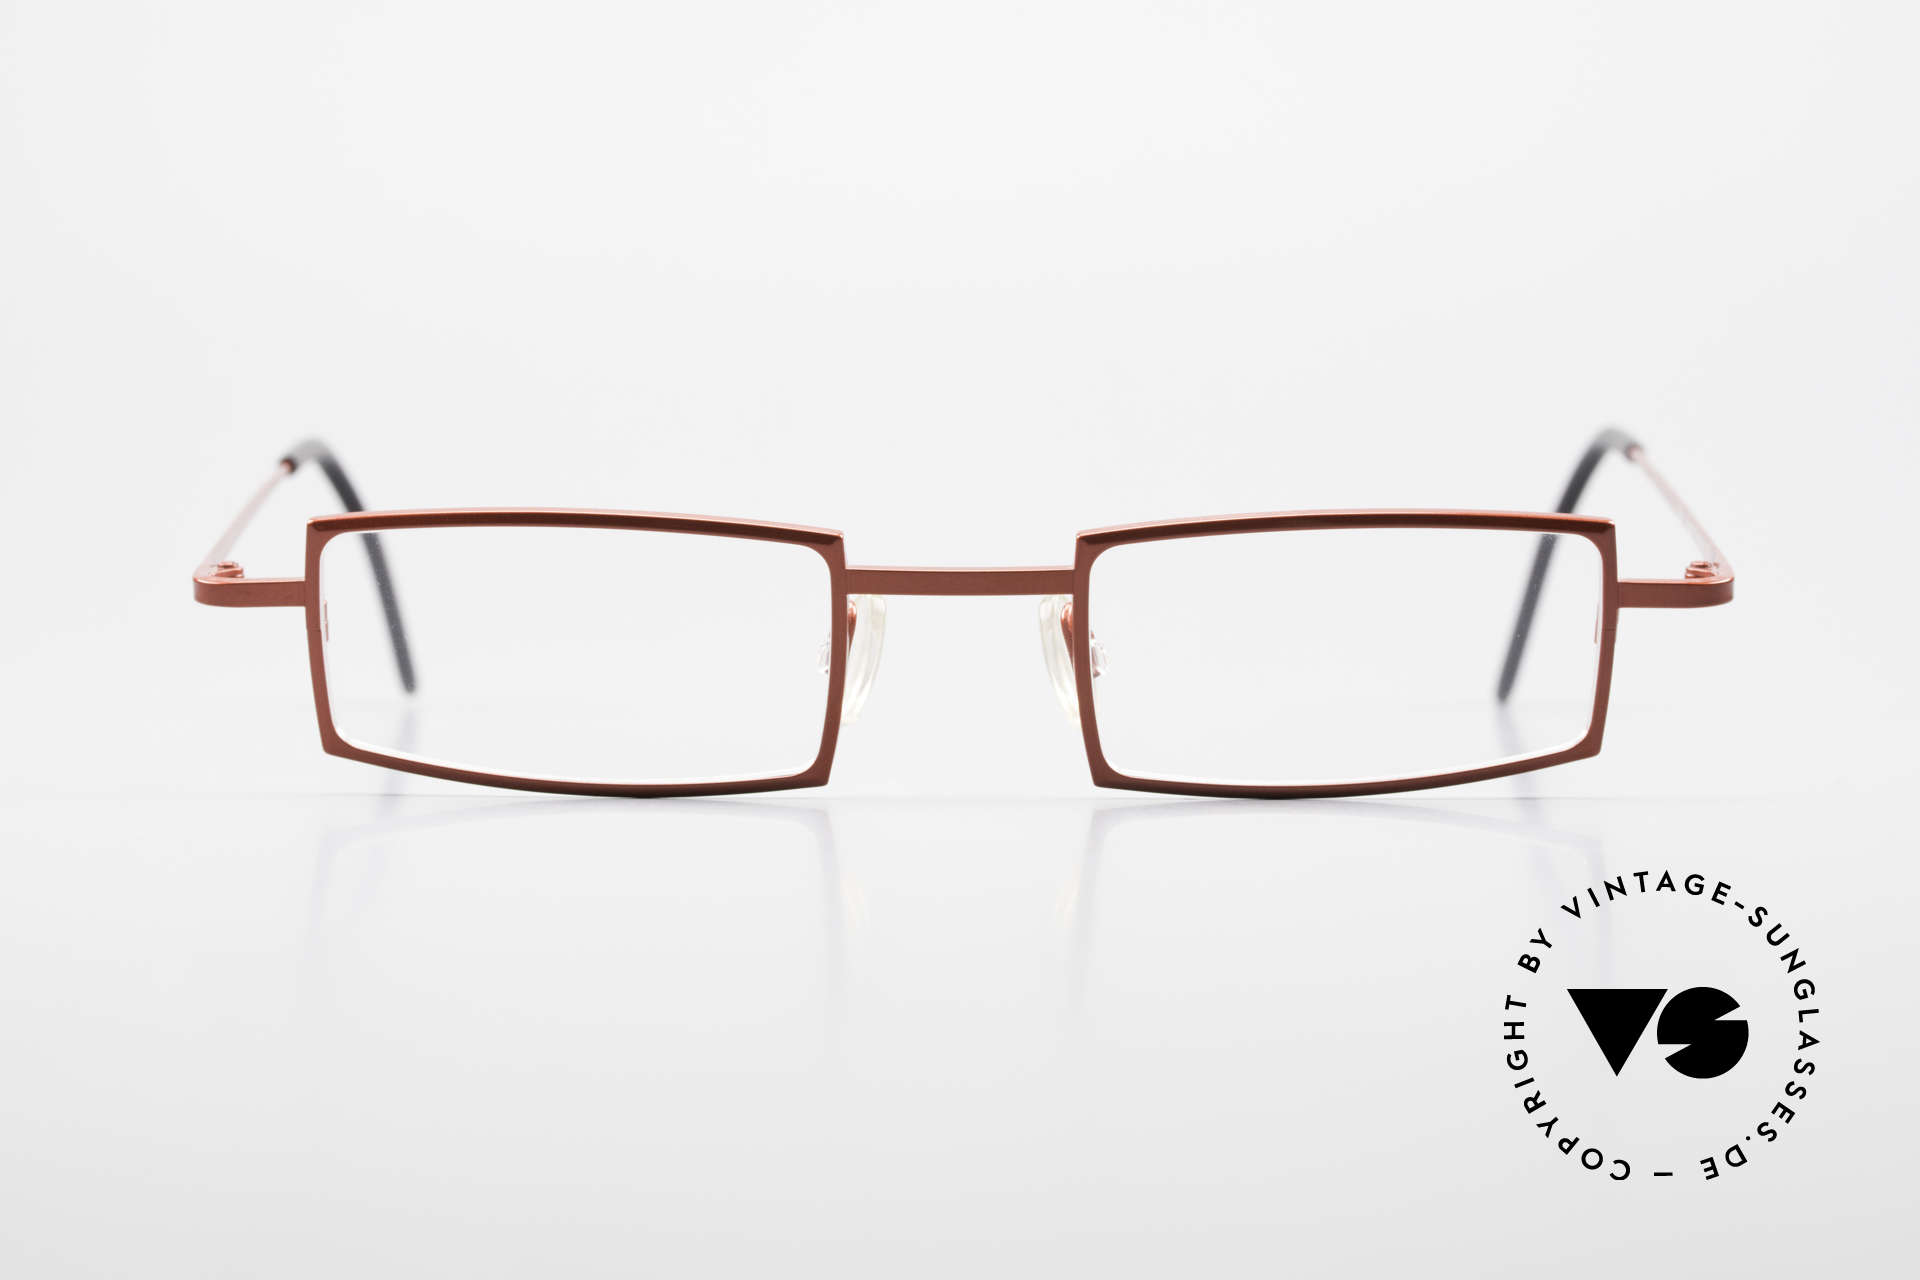 Theo Belgium Largest Square Striking Metal Glasses, very striking frame design with lively red coloring, Made for Women